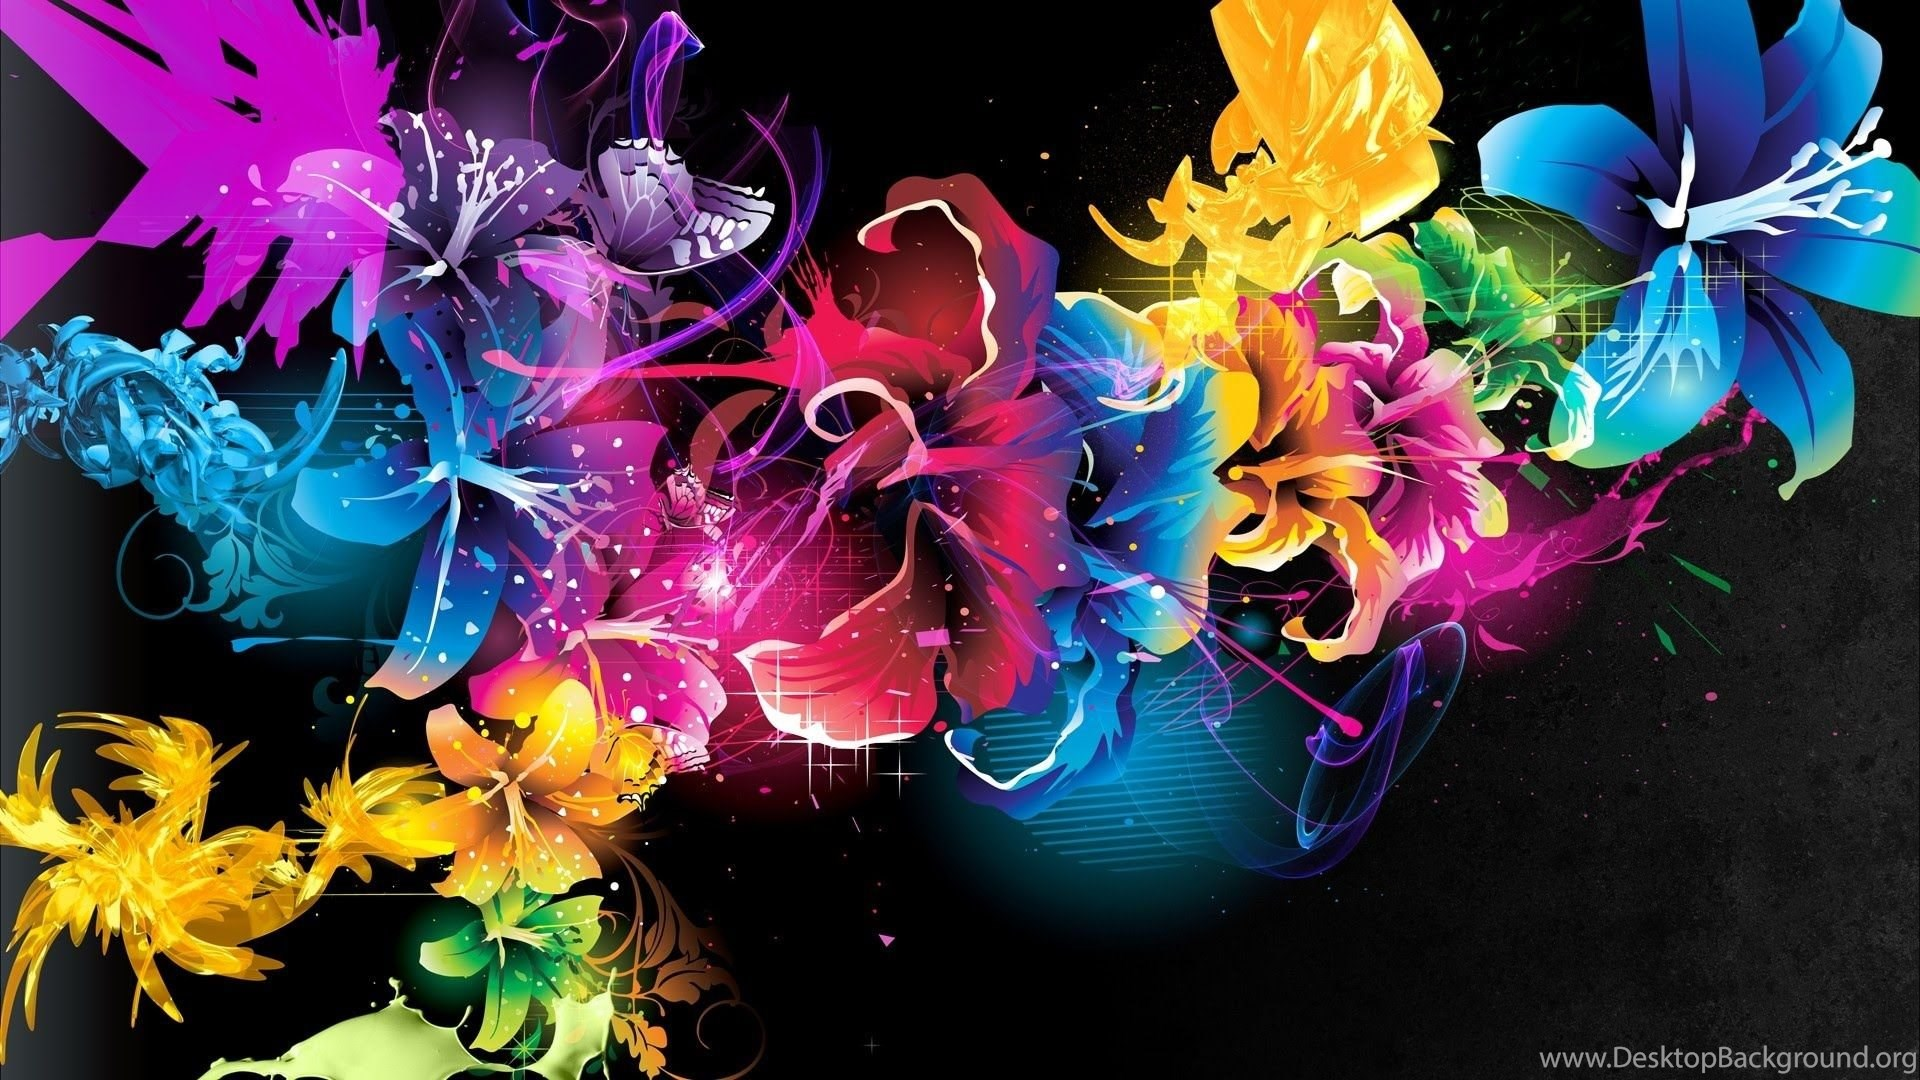 3d flowers hd wallpapers desktop background